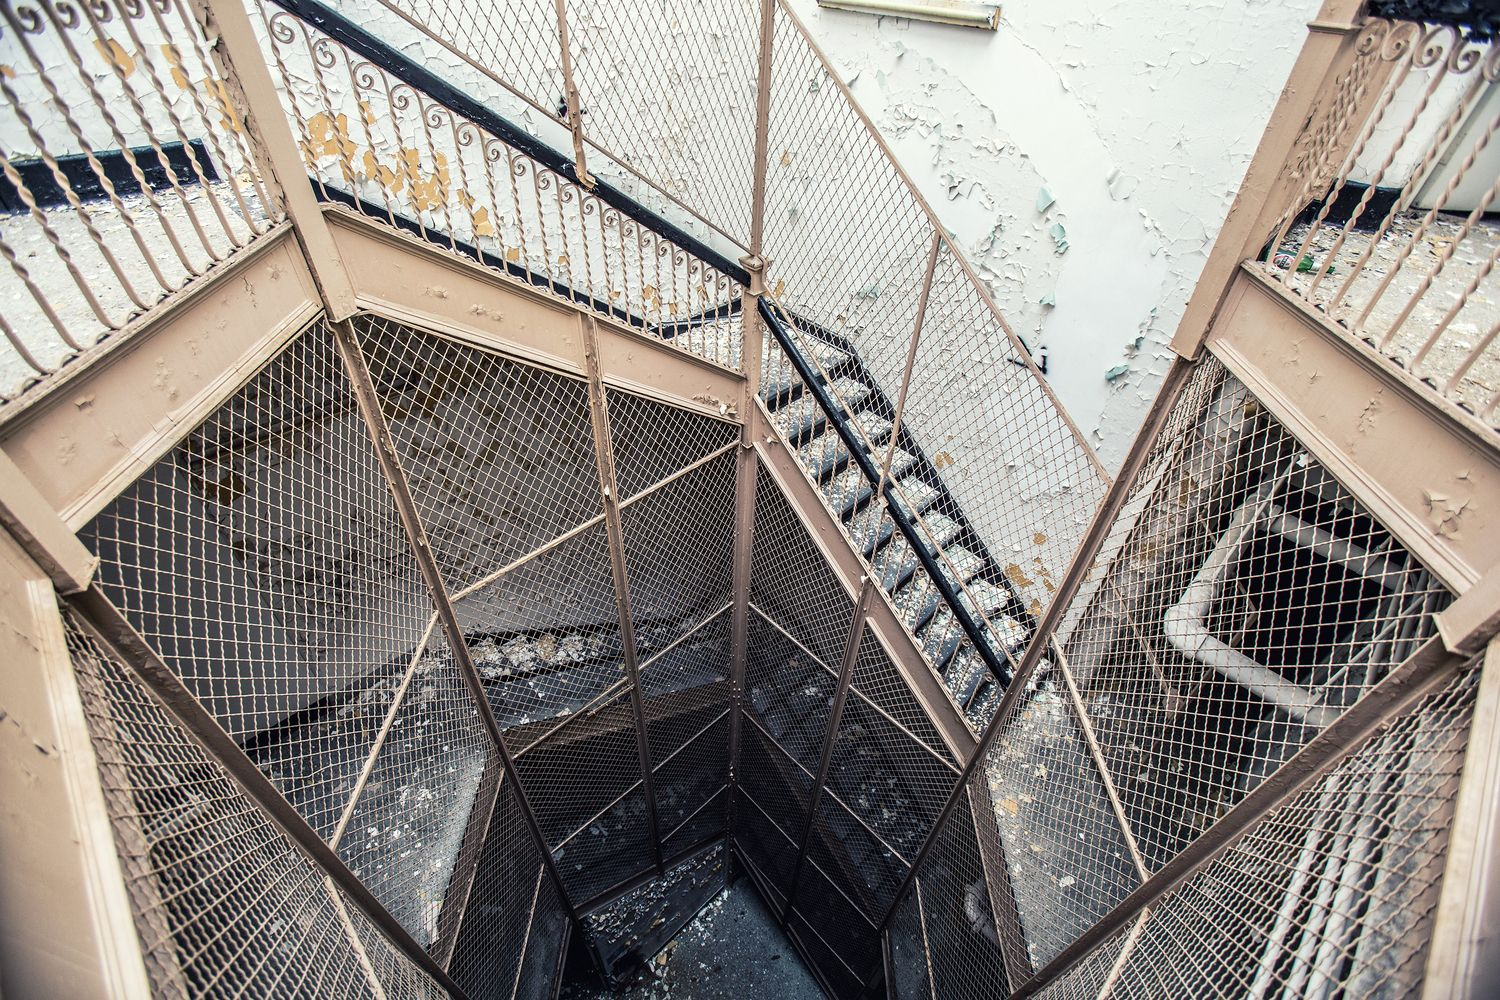 Gallery of These Images of Abandoned Insane Asylums Show Architecture That Was Designed to Heal - 17